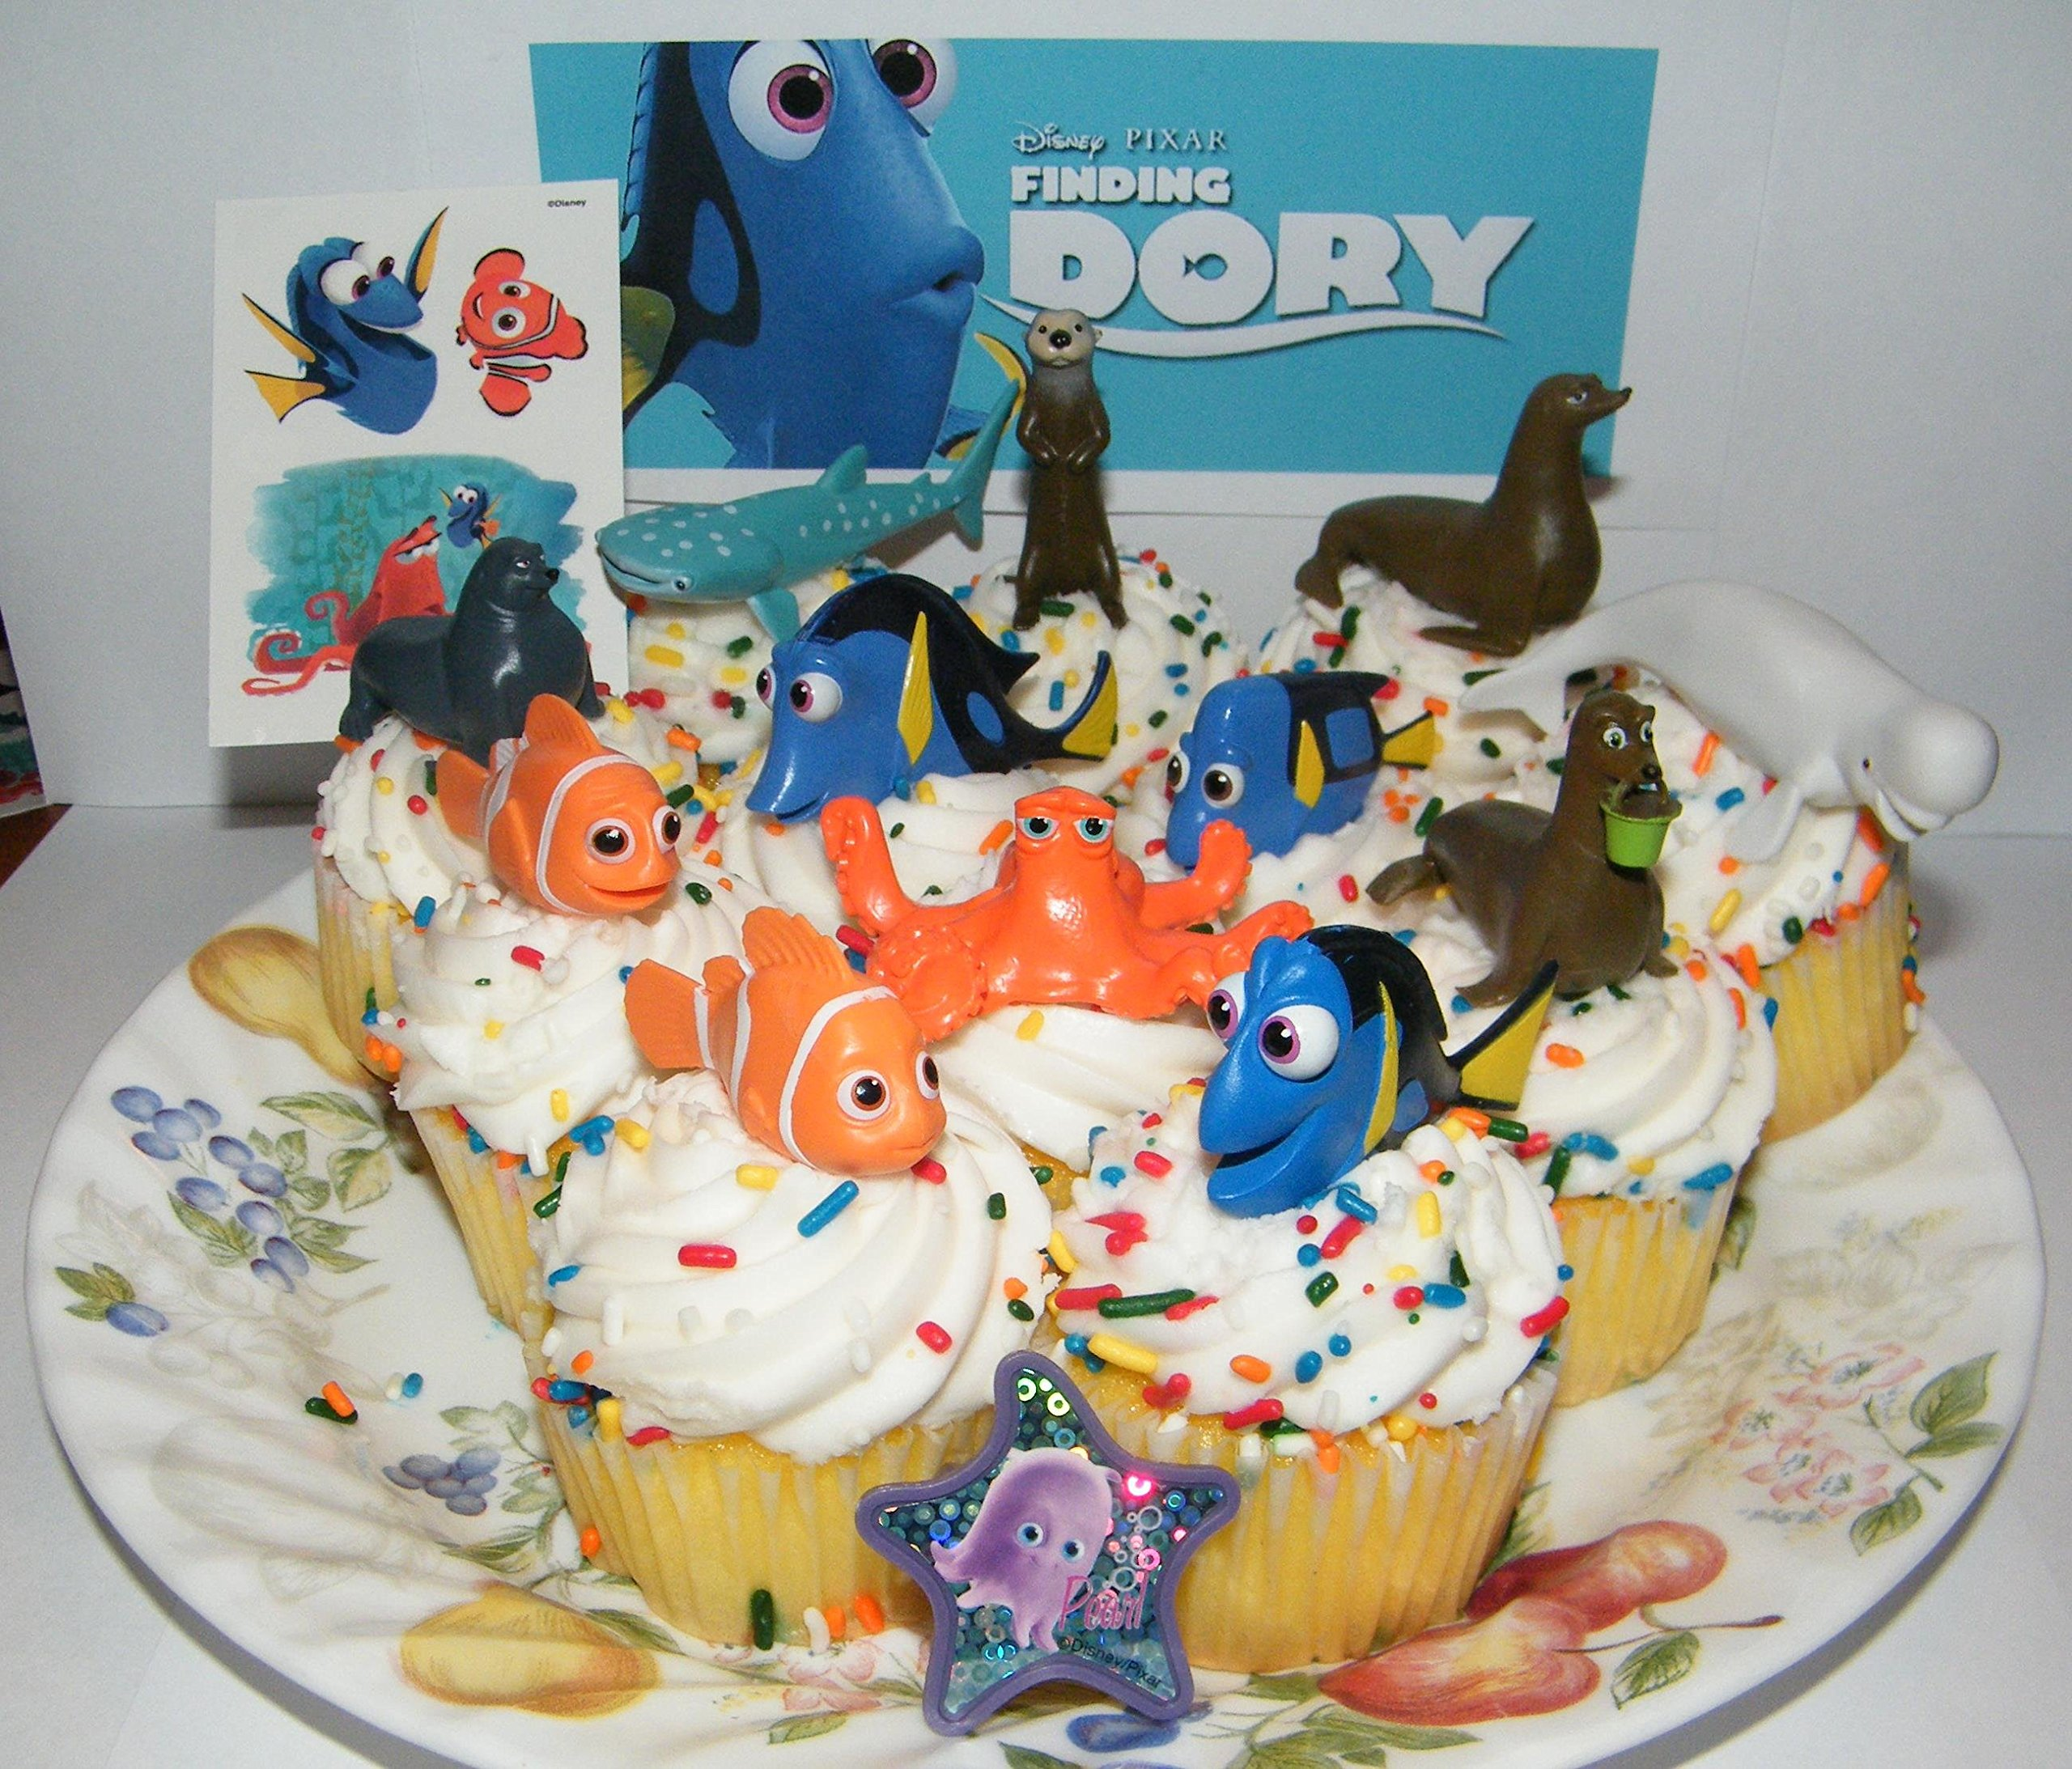 Disney Finding Dory Deluxe Mini Cake Toppers Cupcake Decorations Set of 14 with Figures, a Sticker Sheet, ToyRing Featuring Dory, Nemo and Mnay More! by Finding Dory